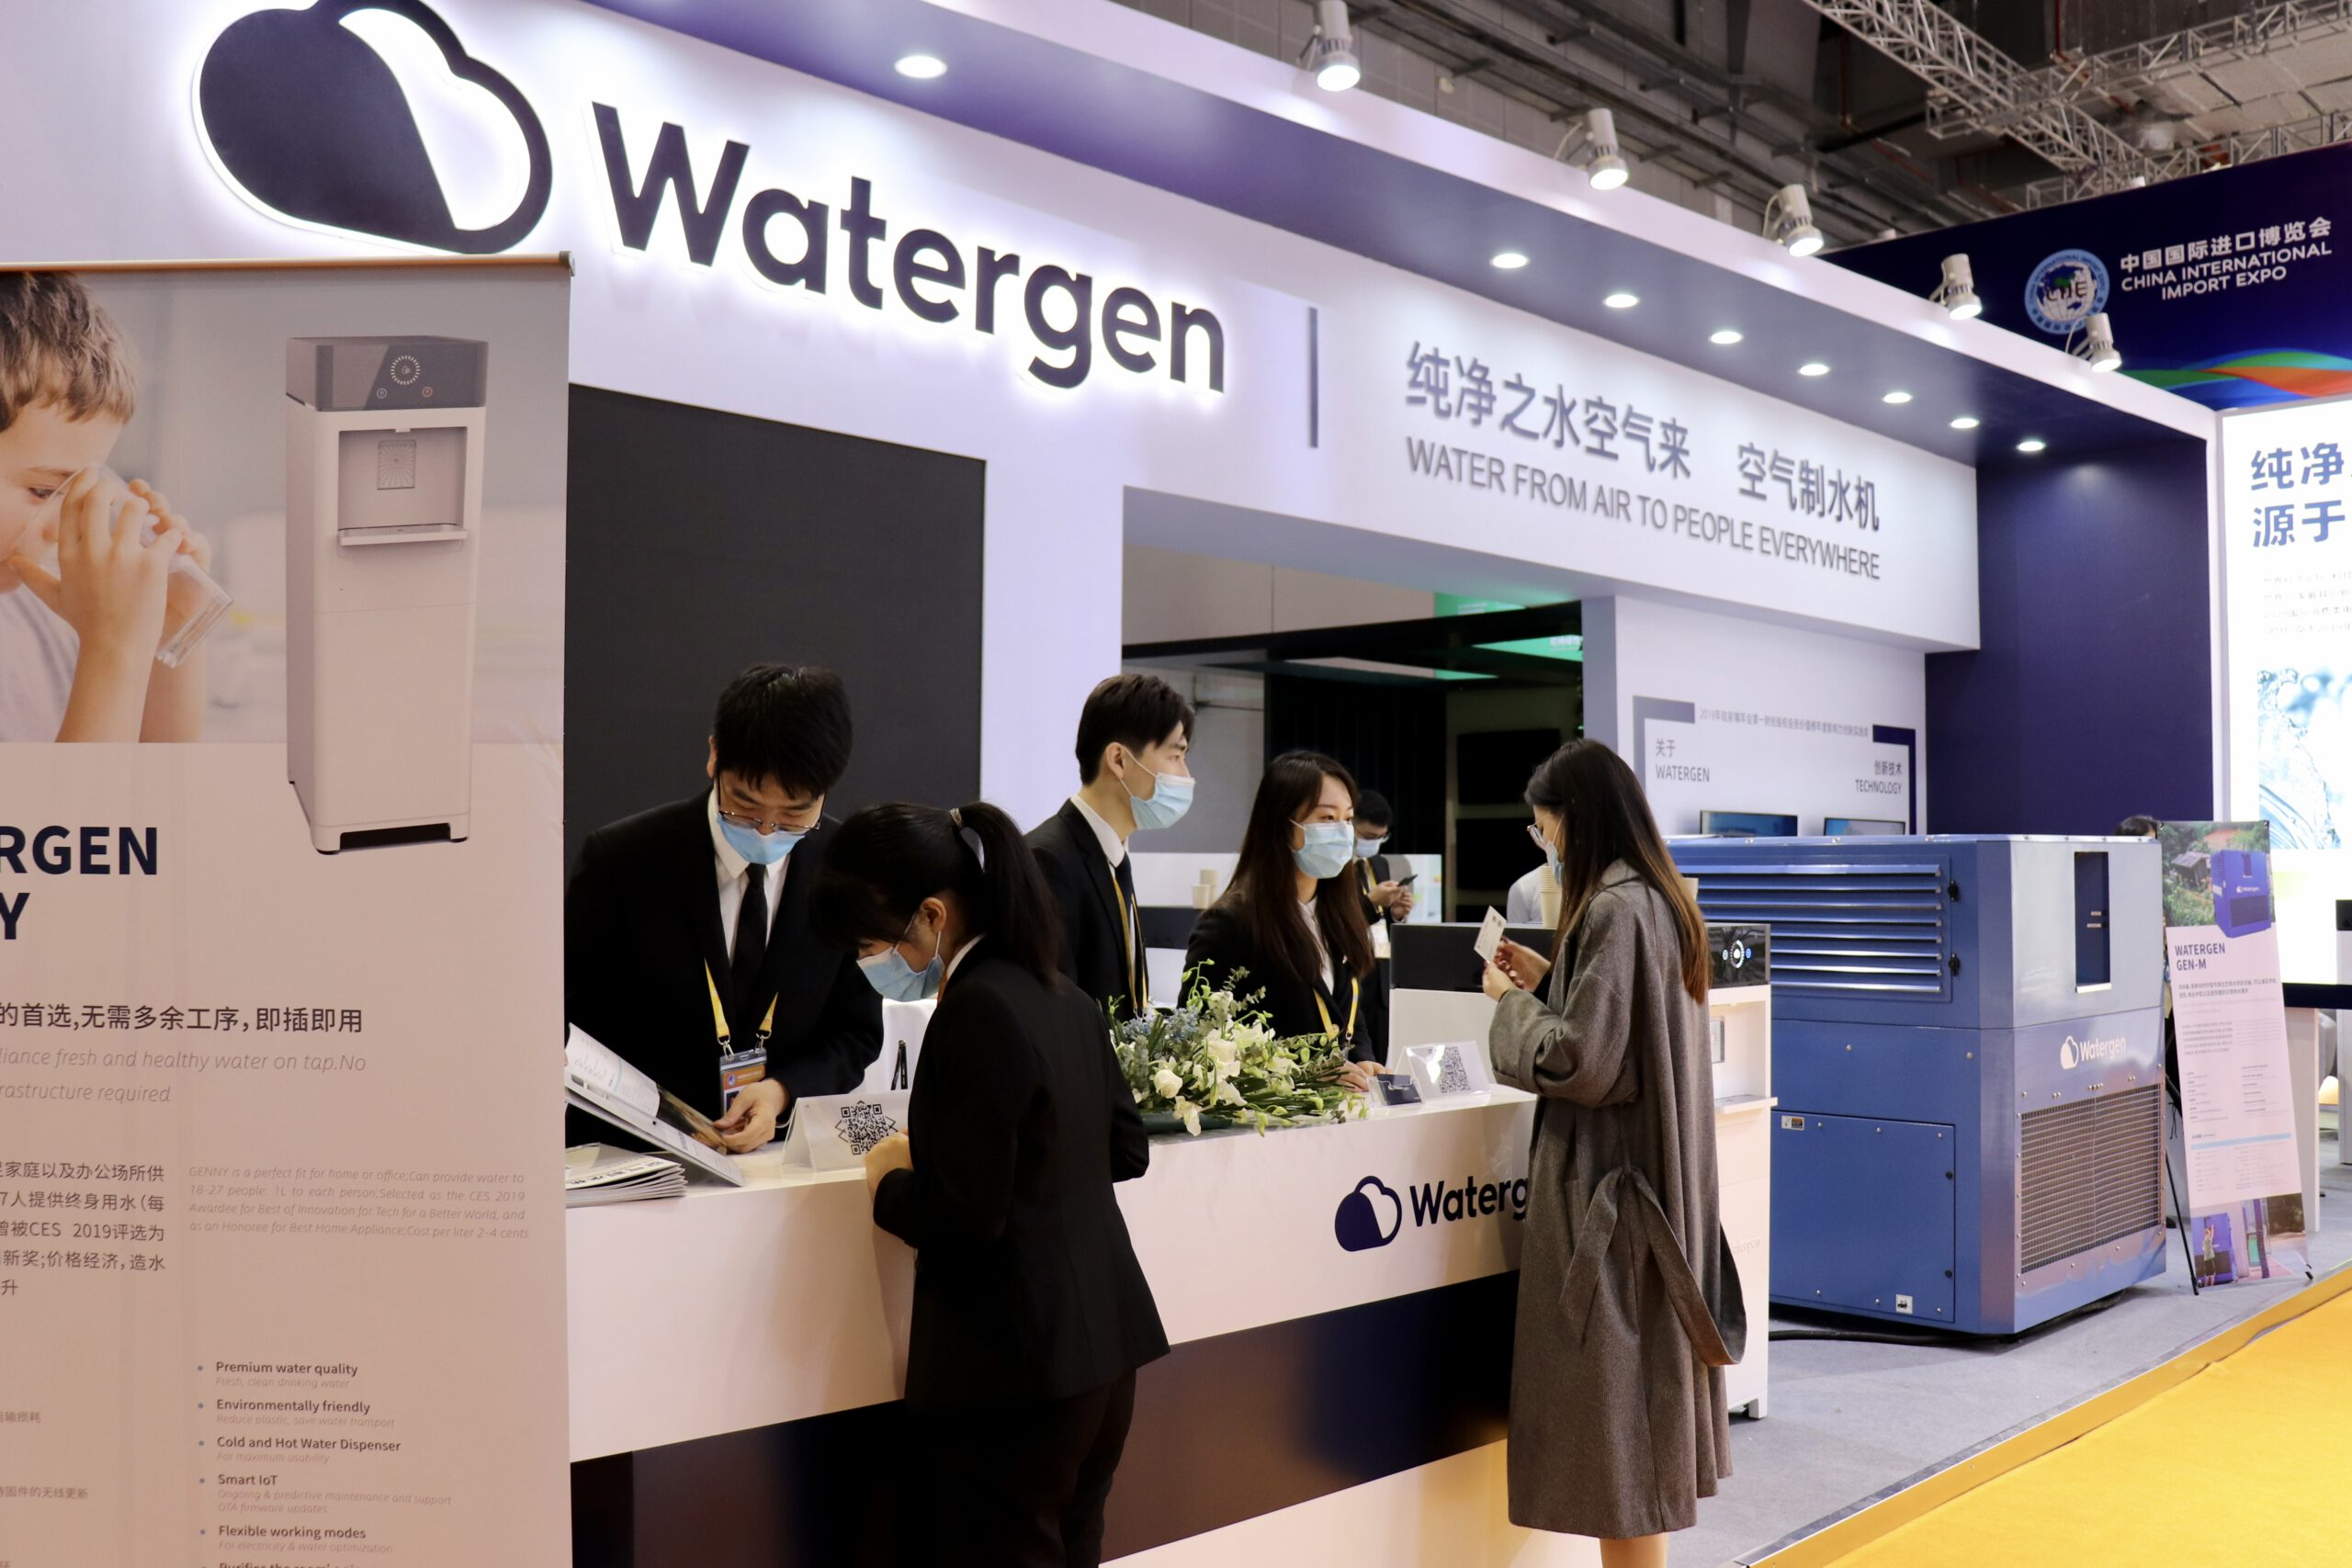 Watergen participated at Third Annual China International Import expo CIIE2020